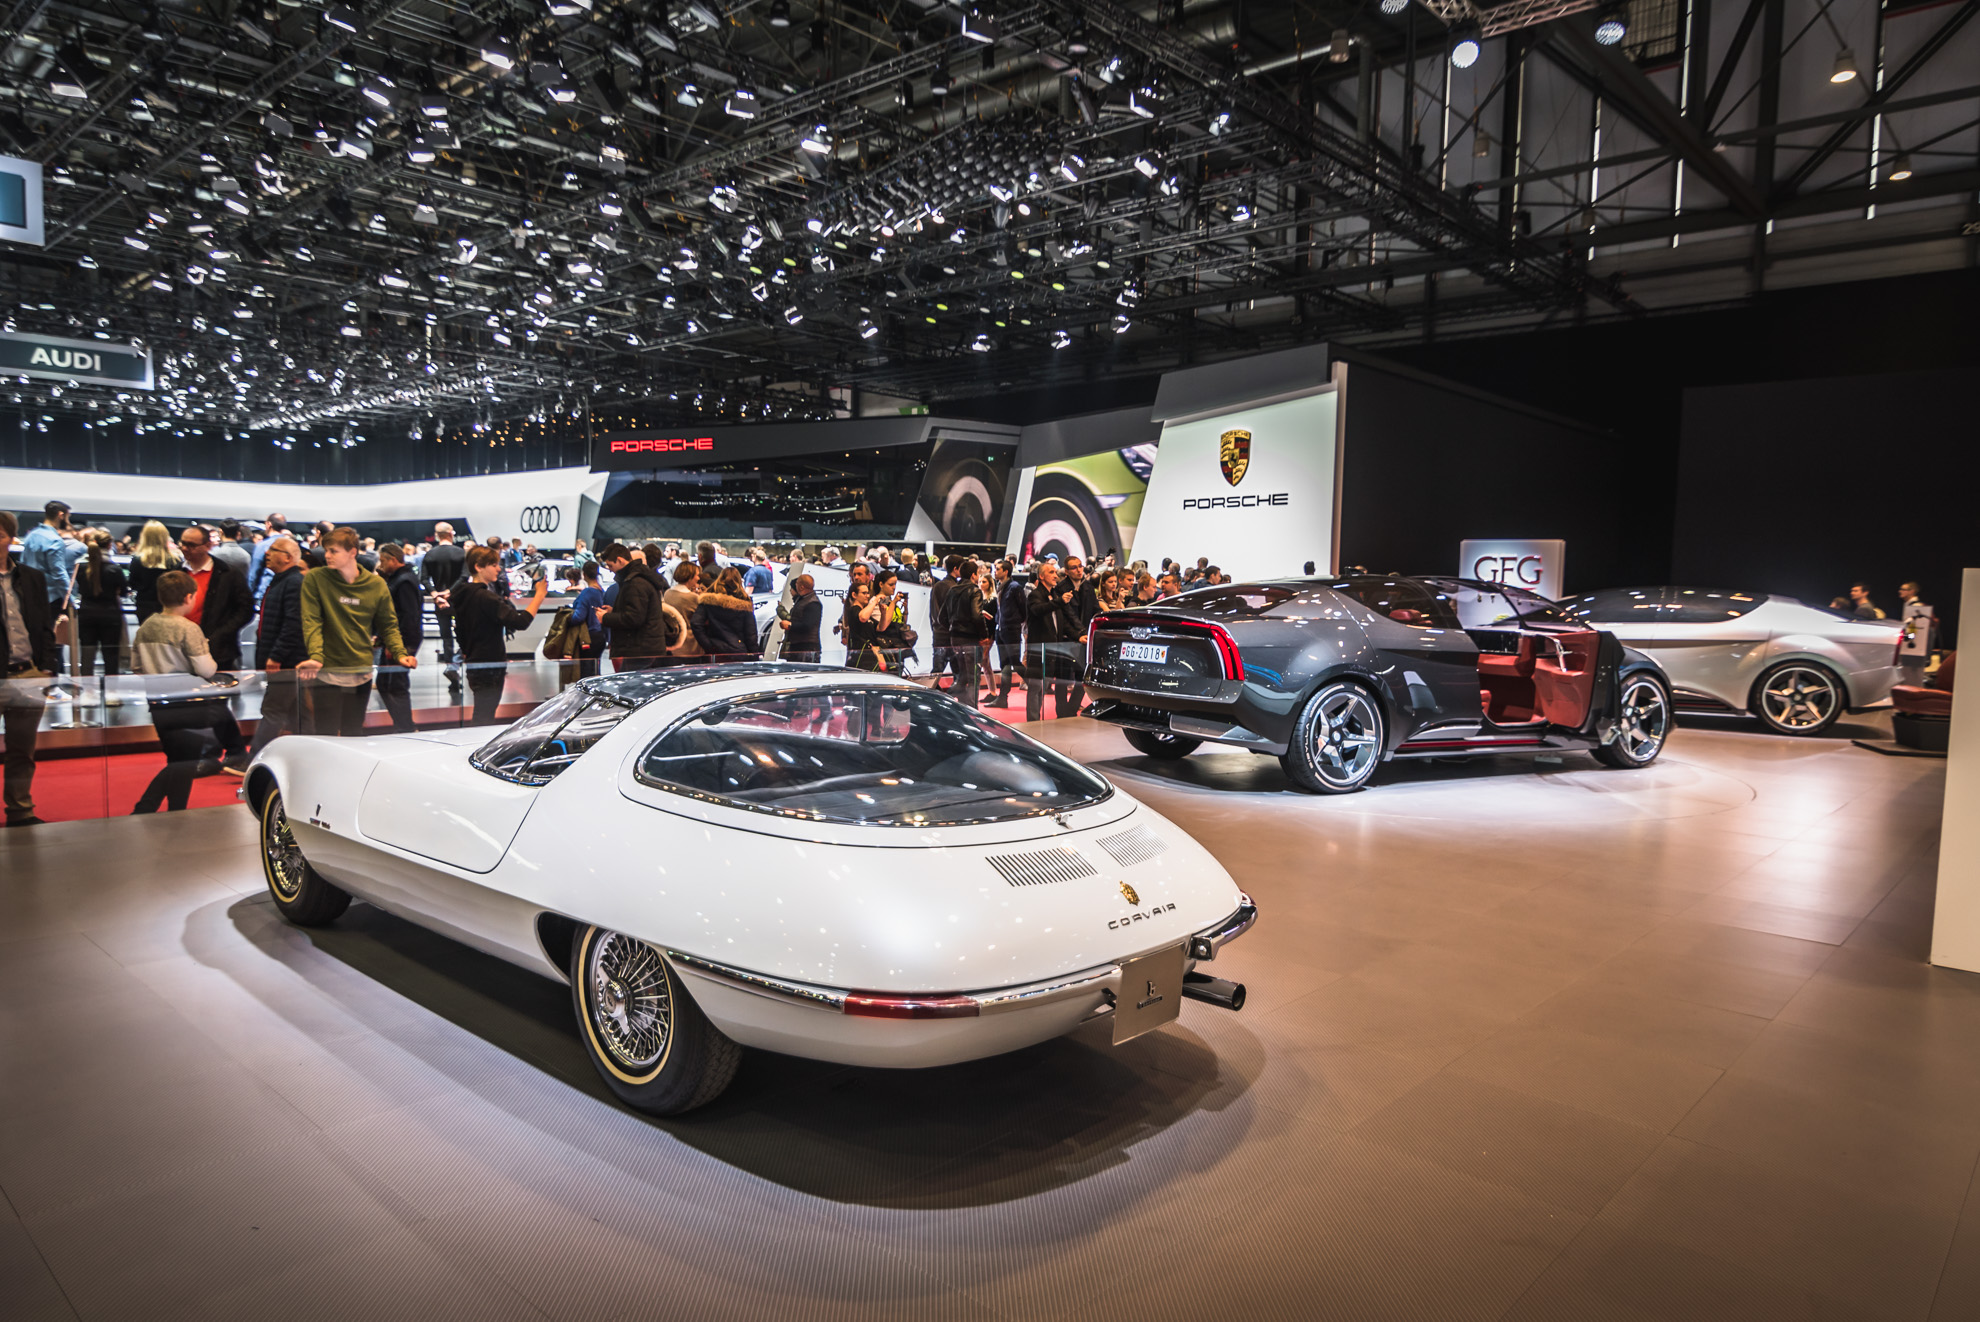 geneva-international-motor-show-igors-sinitsins-14